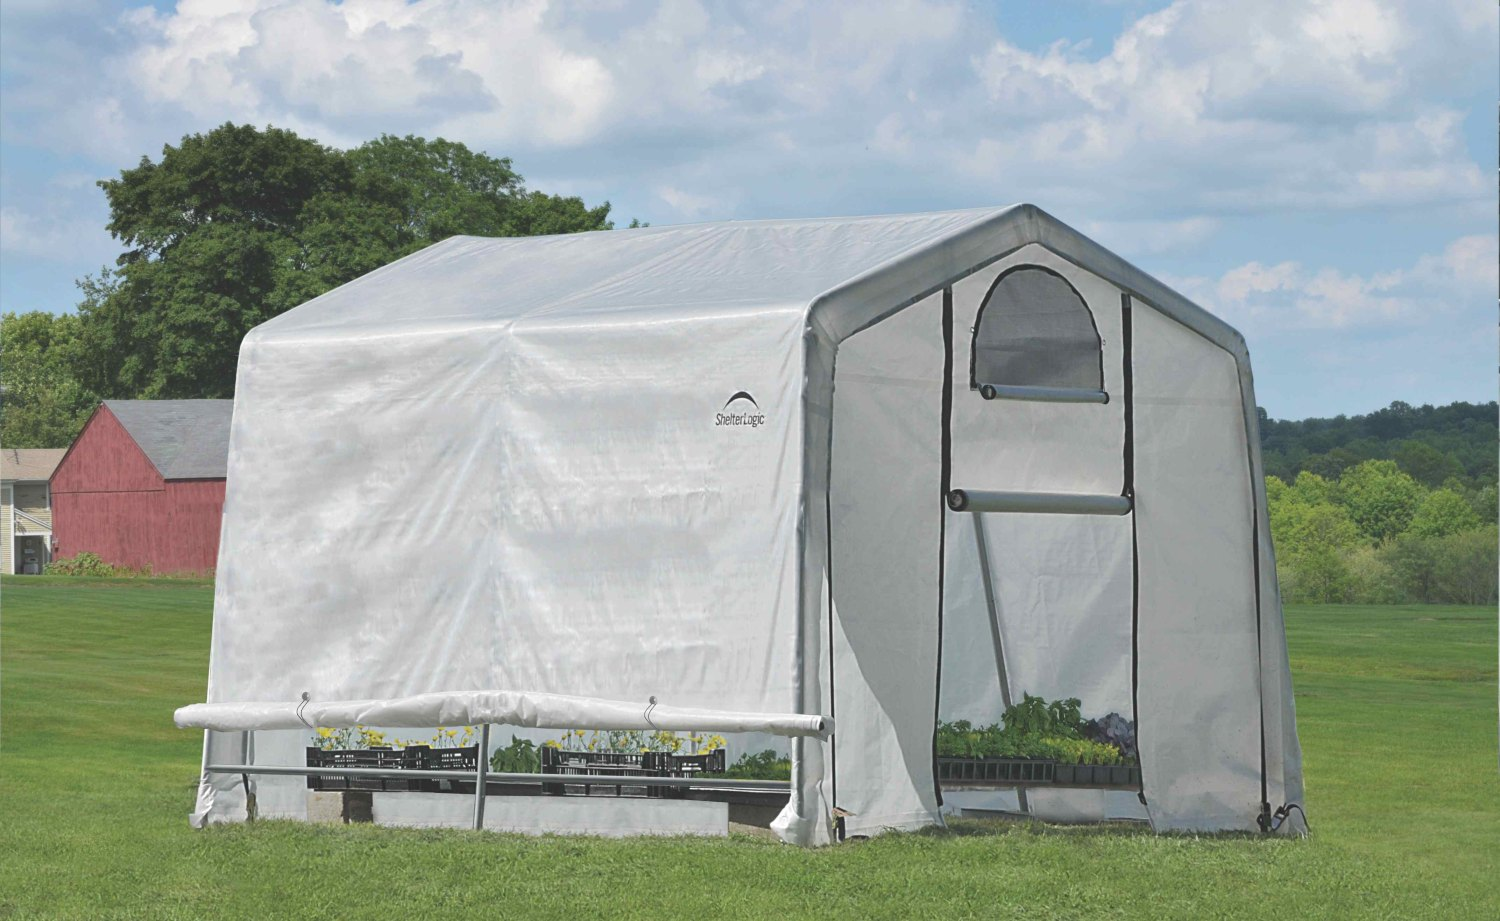 SHELTERLOGIC 3,0x3,0 m - 35 mm - 70656EU fóliovník